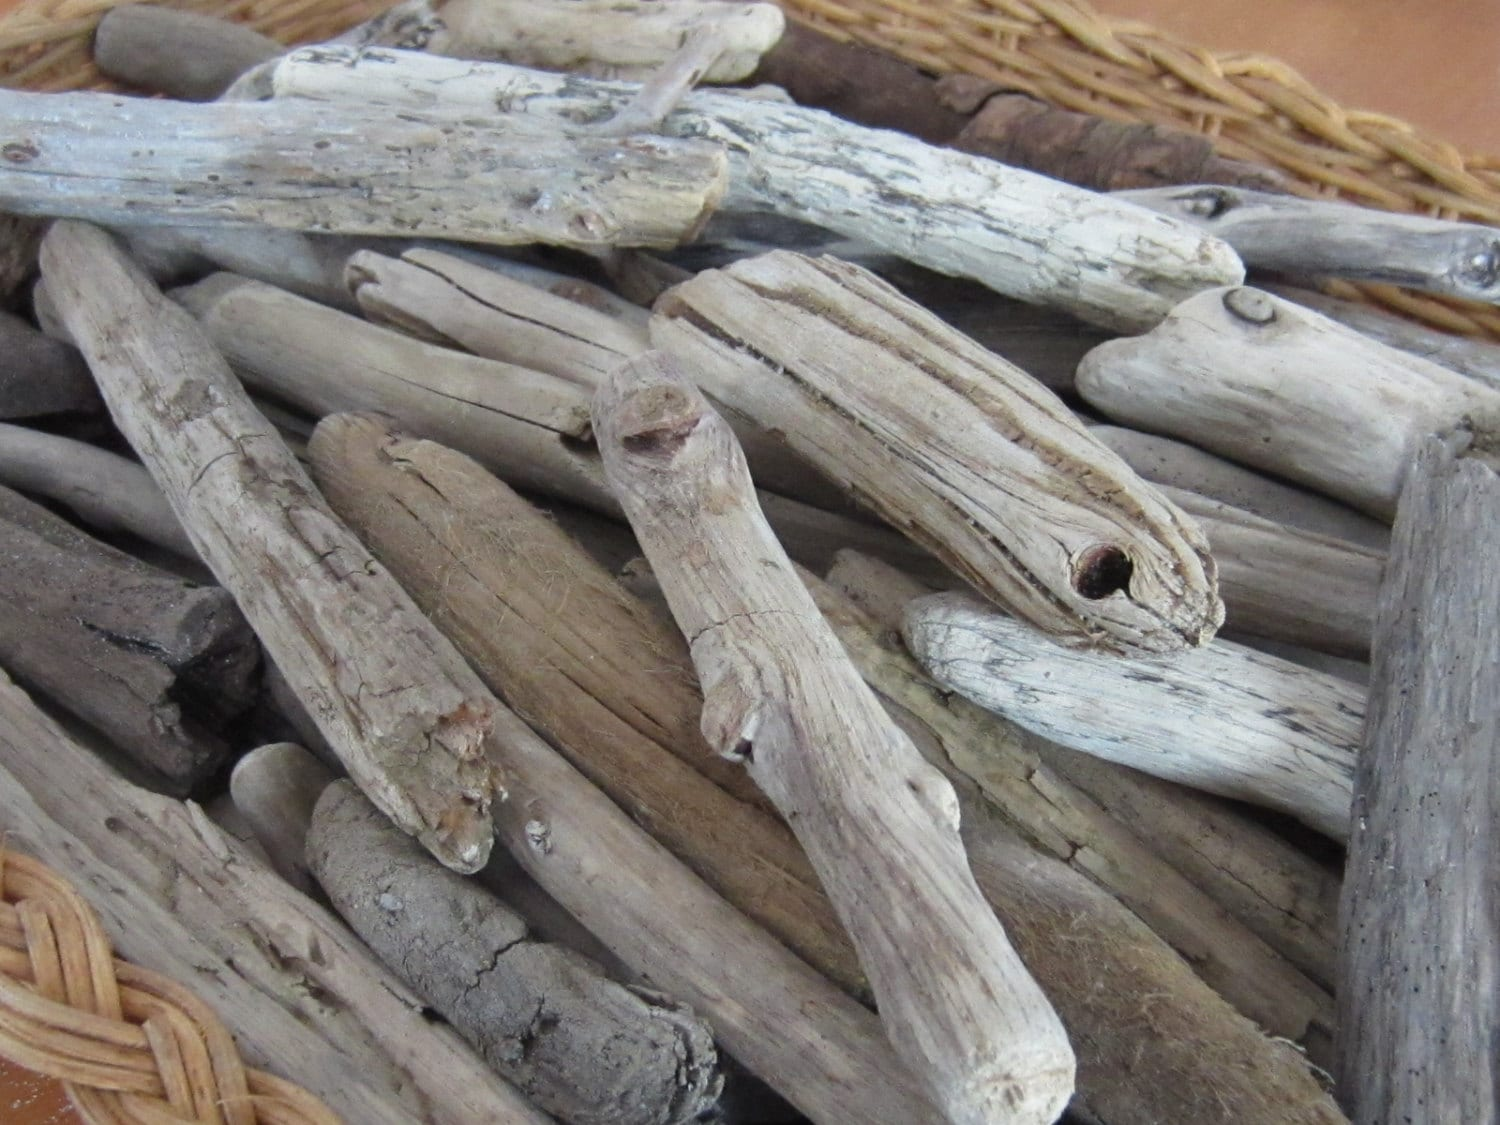 driftwood craft ideas bulk lot maine driftwood 5lbs 350 pieces diy crafts 2 to 1903